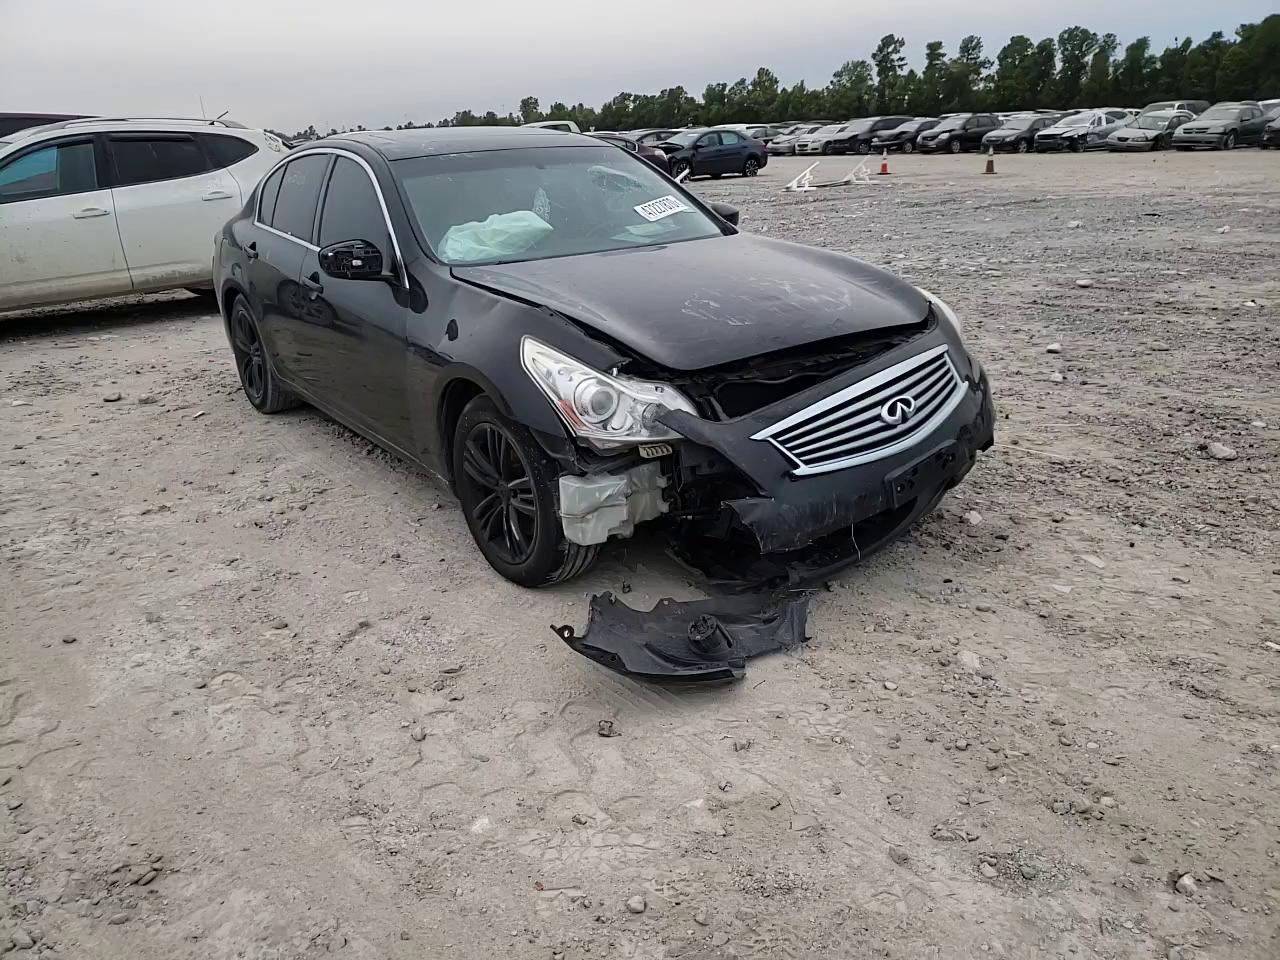 Infiniti G37 Base salvage cars for sale: 2010 Infiniti G37 Base